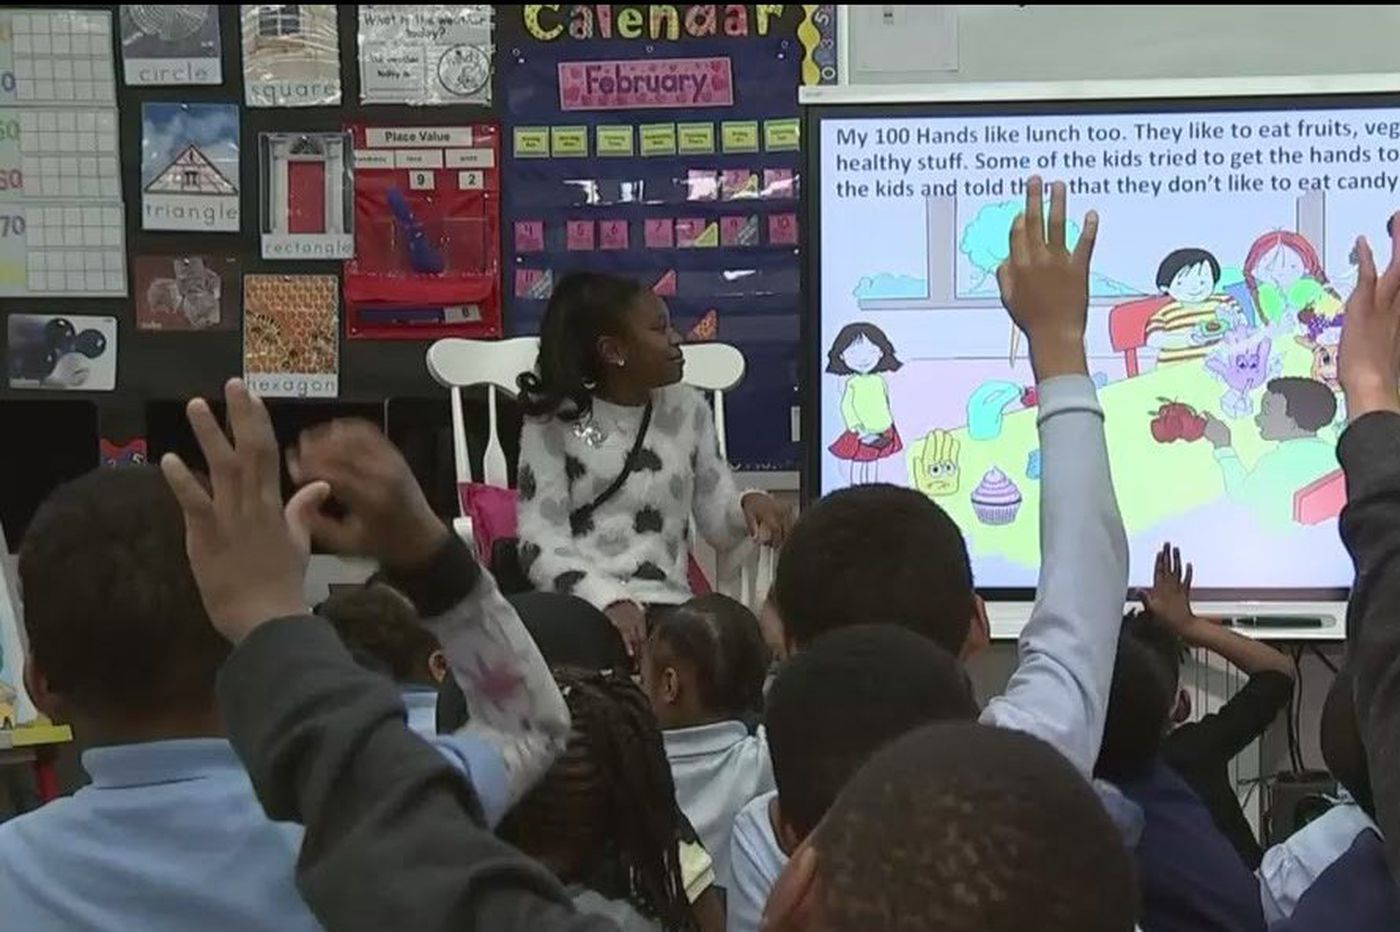 If not higher taxes, find another way to help cash poor Philly schools | Editorial